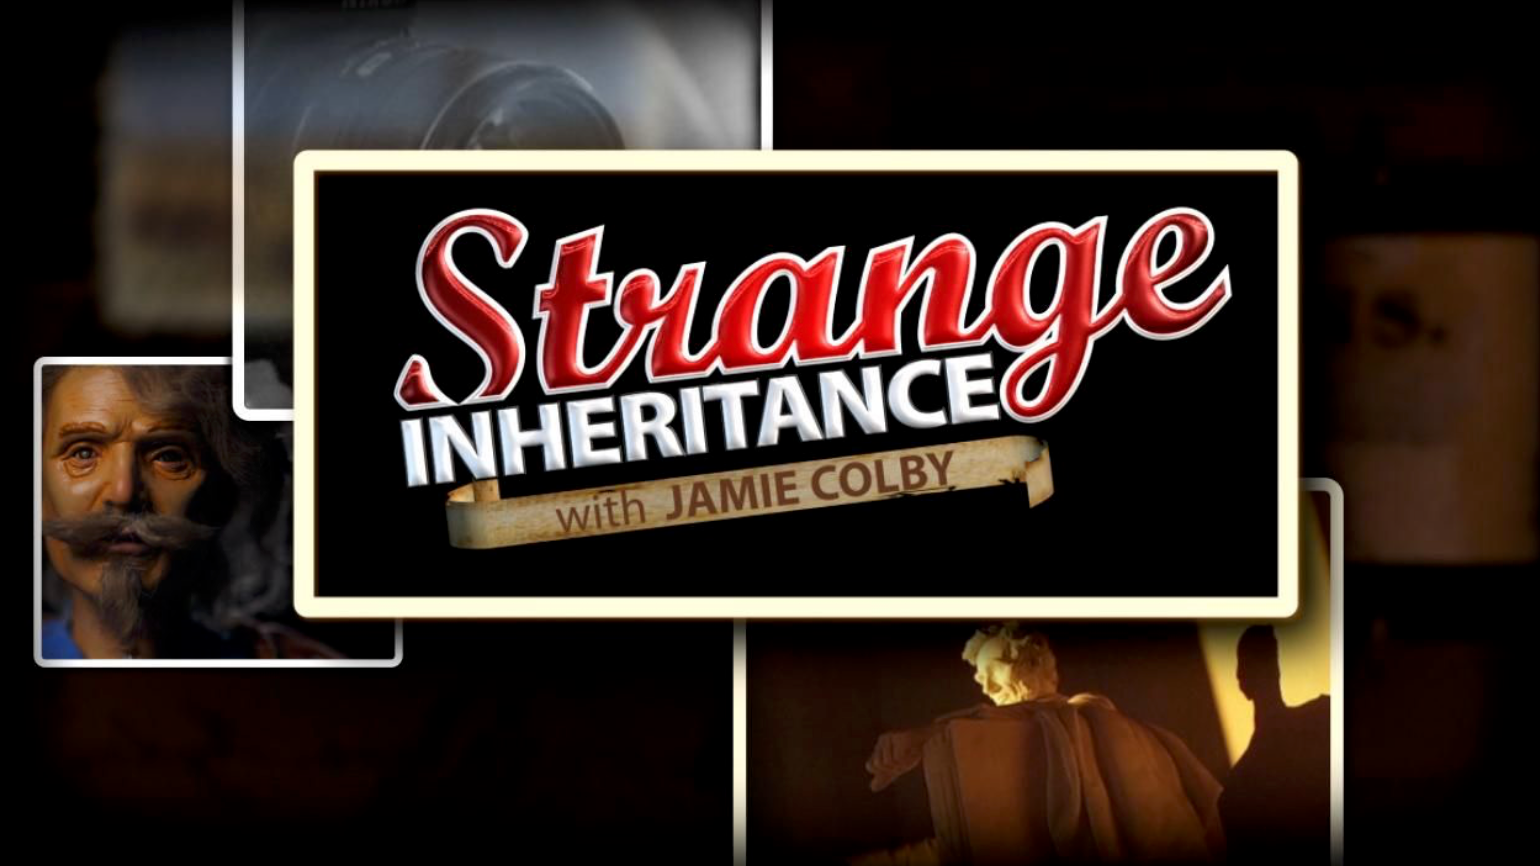 Strange inheritance - FOX BUSINESS